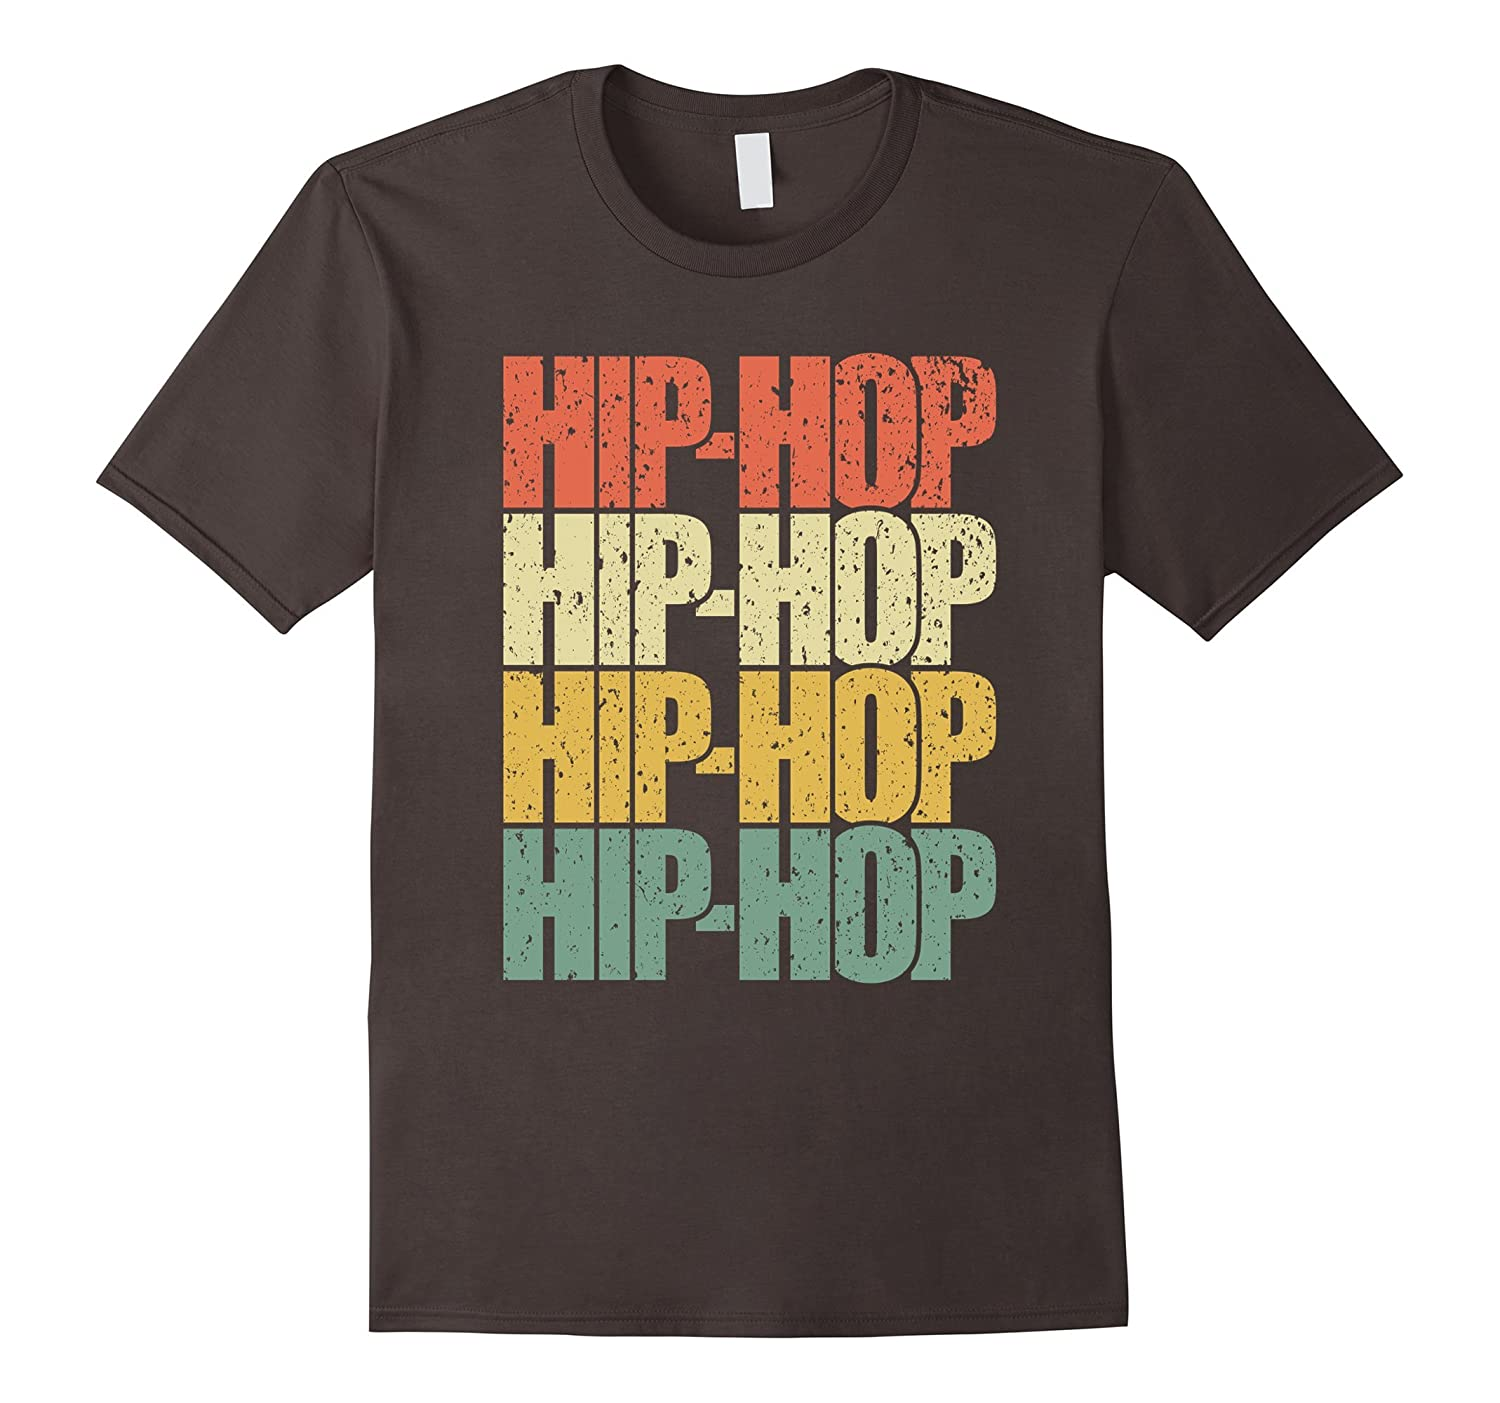 Hip hop vintage colors shirt retro vintage classic t for Just hip hop t shirt